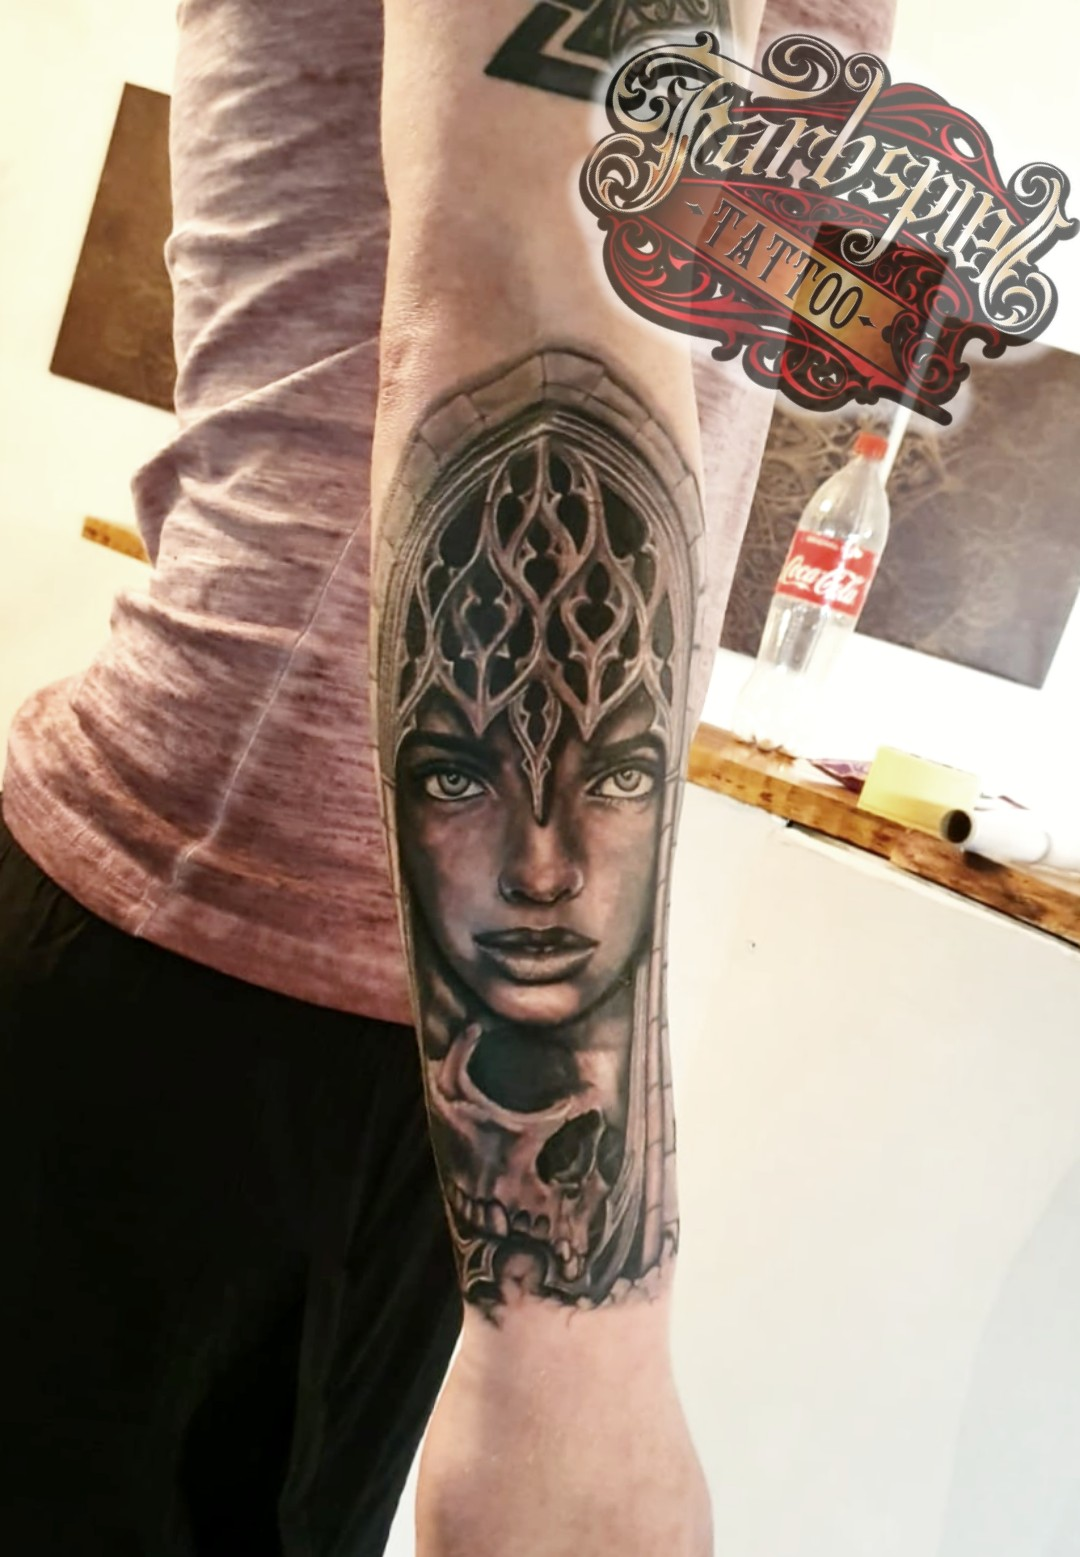 Kirchenfenster Girl Tattoo